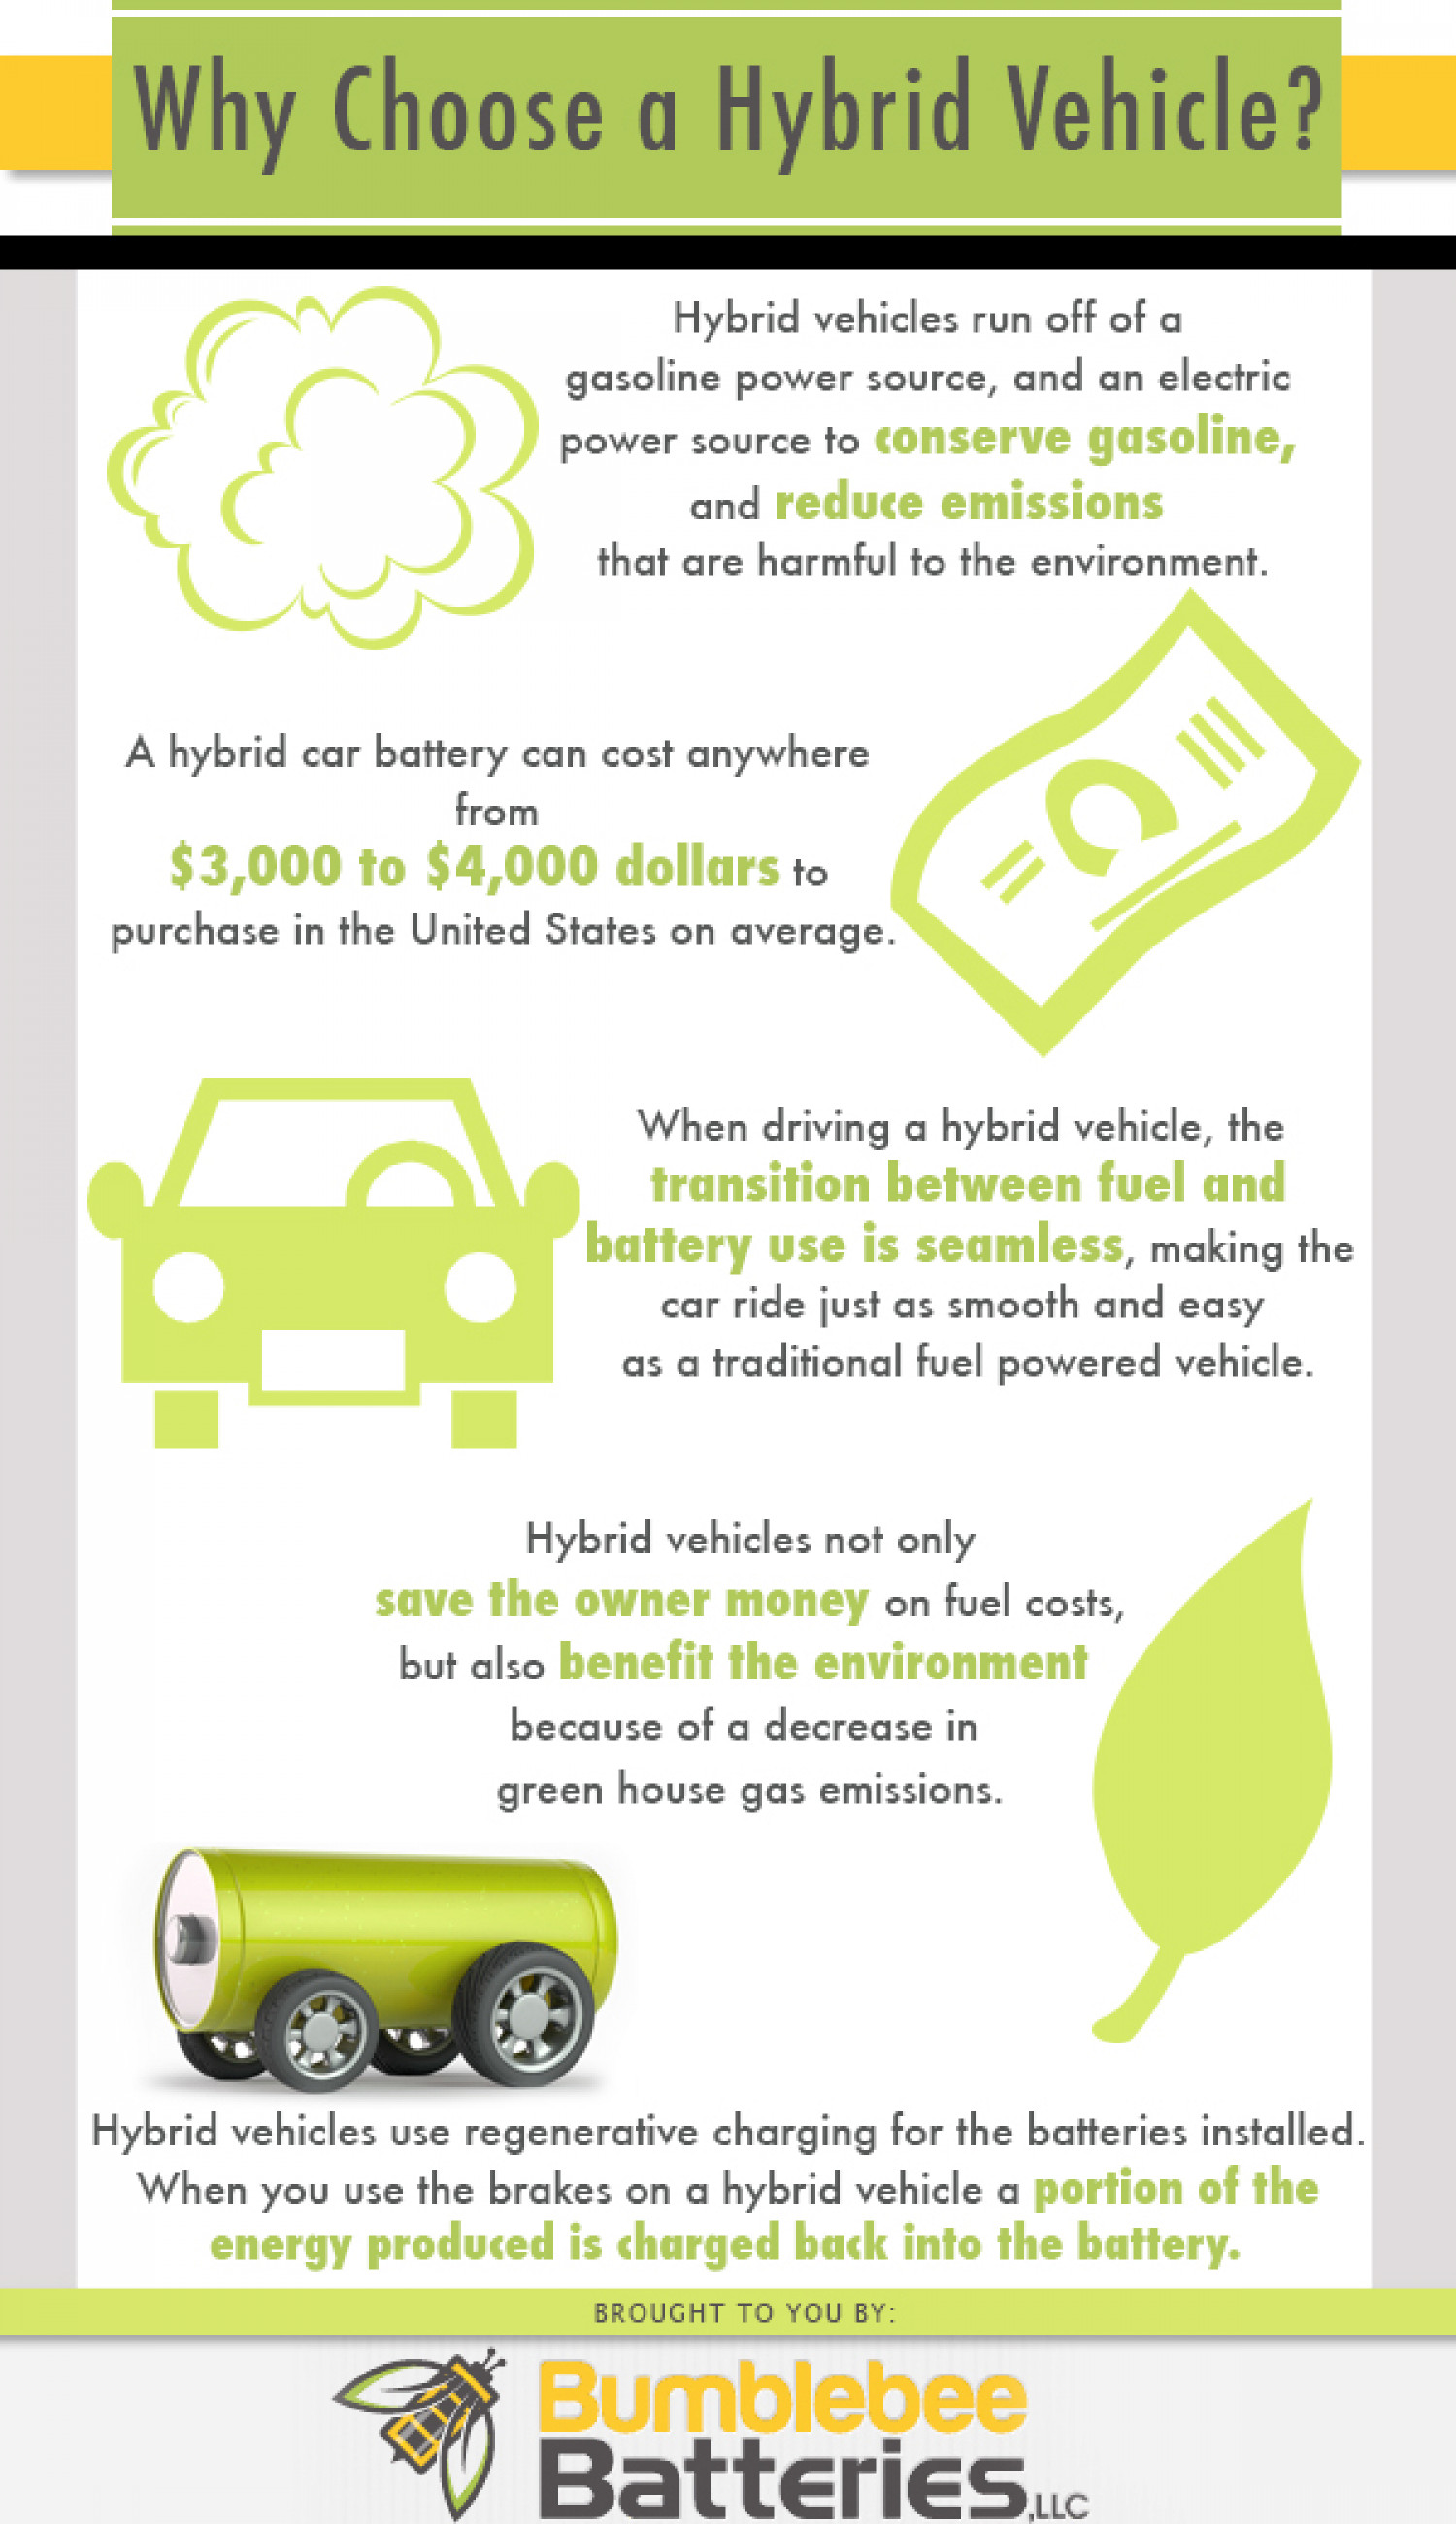 Why Choose A Hybrid Vehicle? Infographic